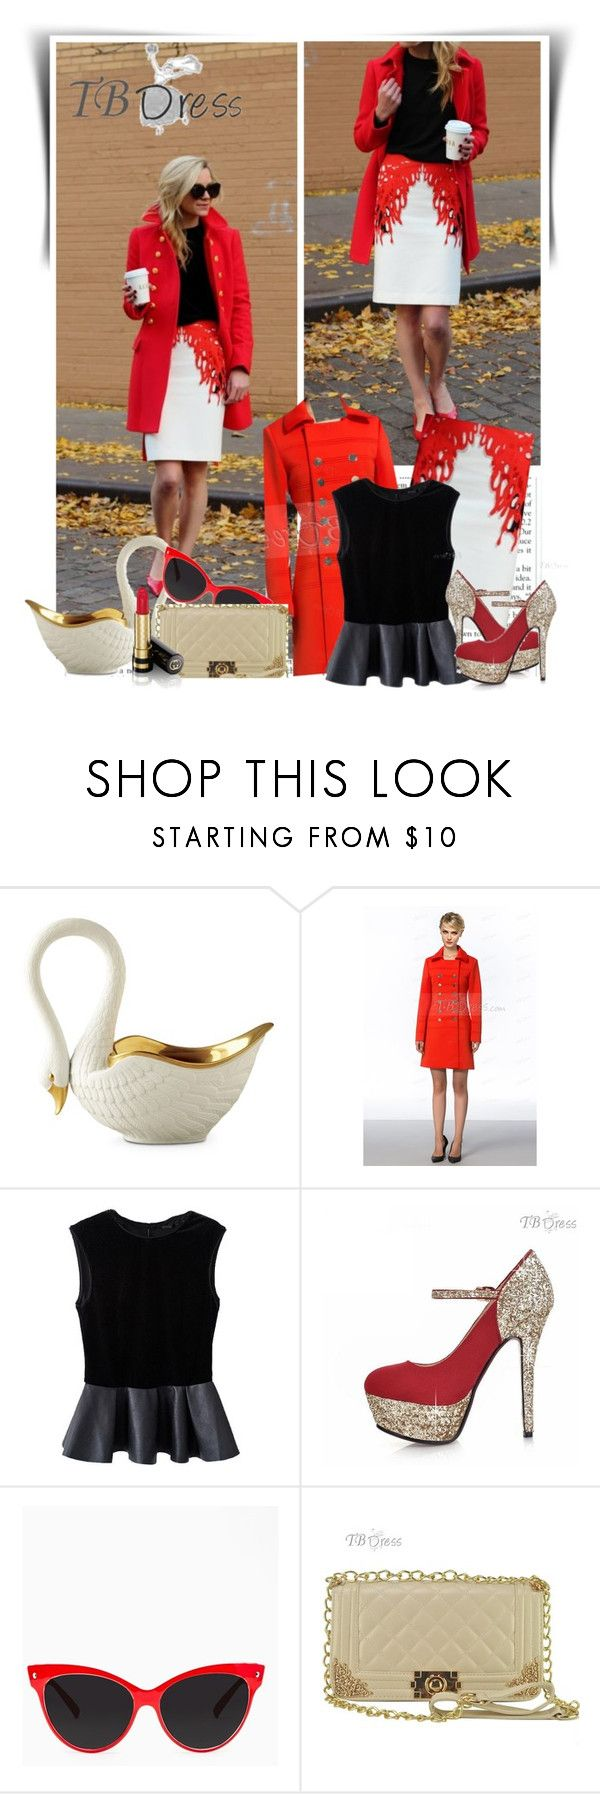 """""""TB Dress"""" by dalila-mujic ❤ liked on Polyvore featuring L'Objet, Gucci and tbdress"""